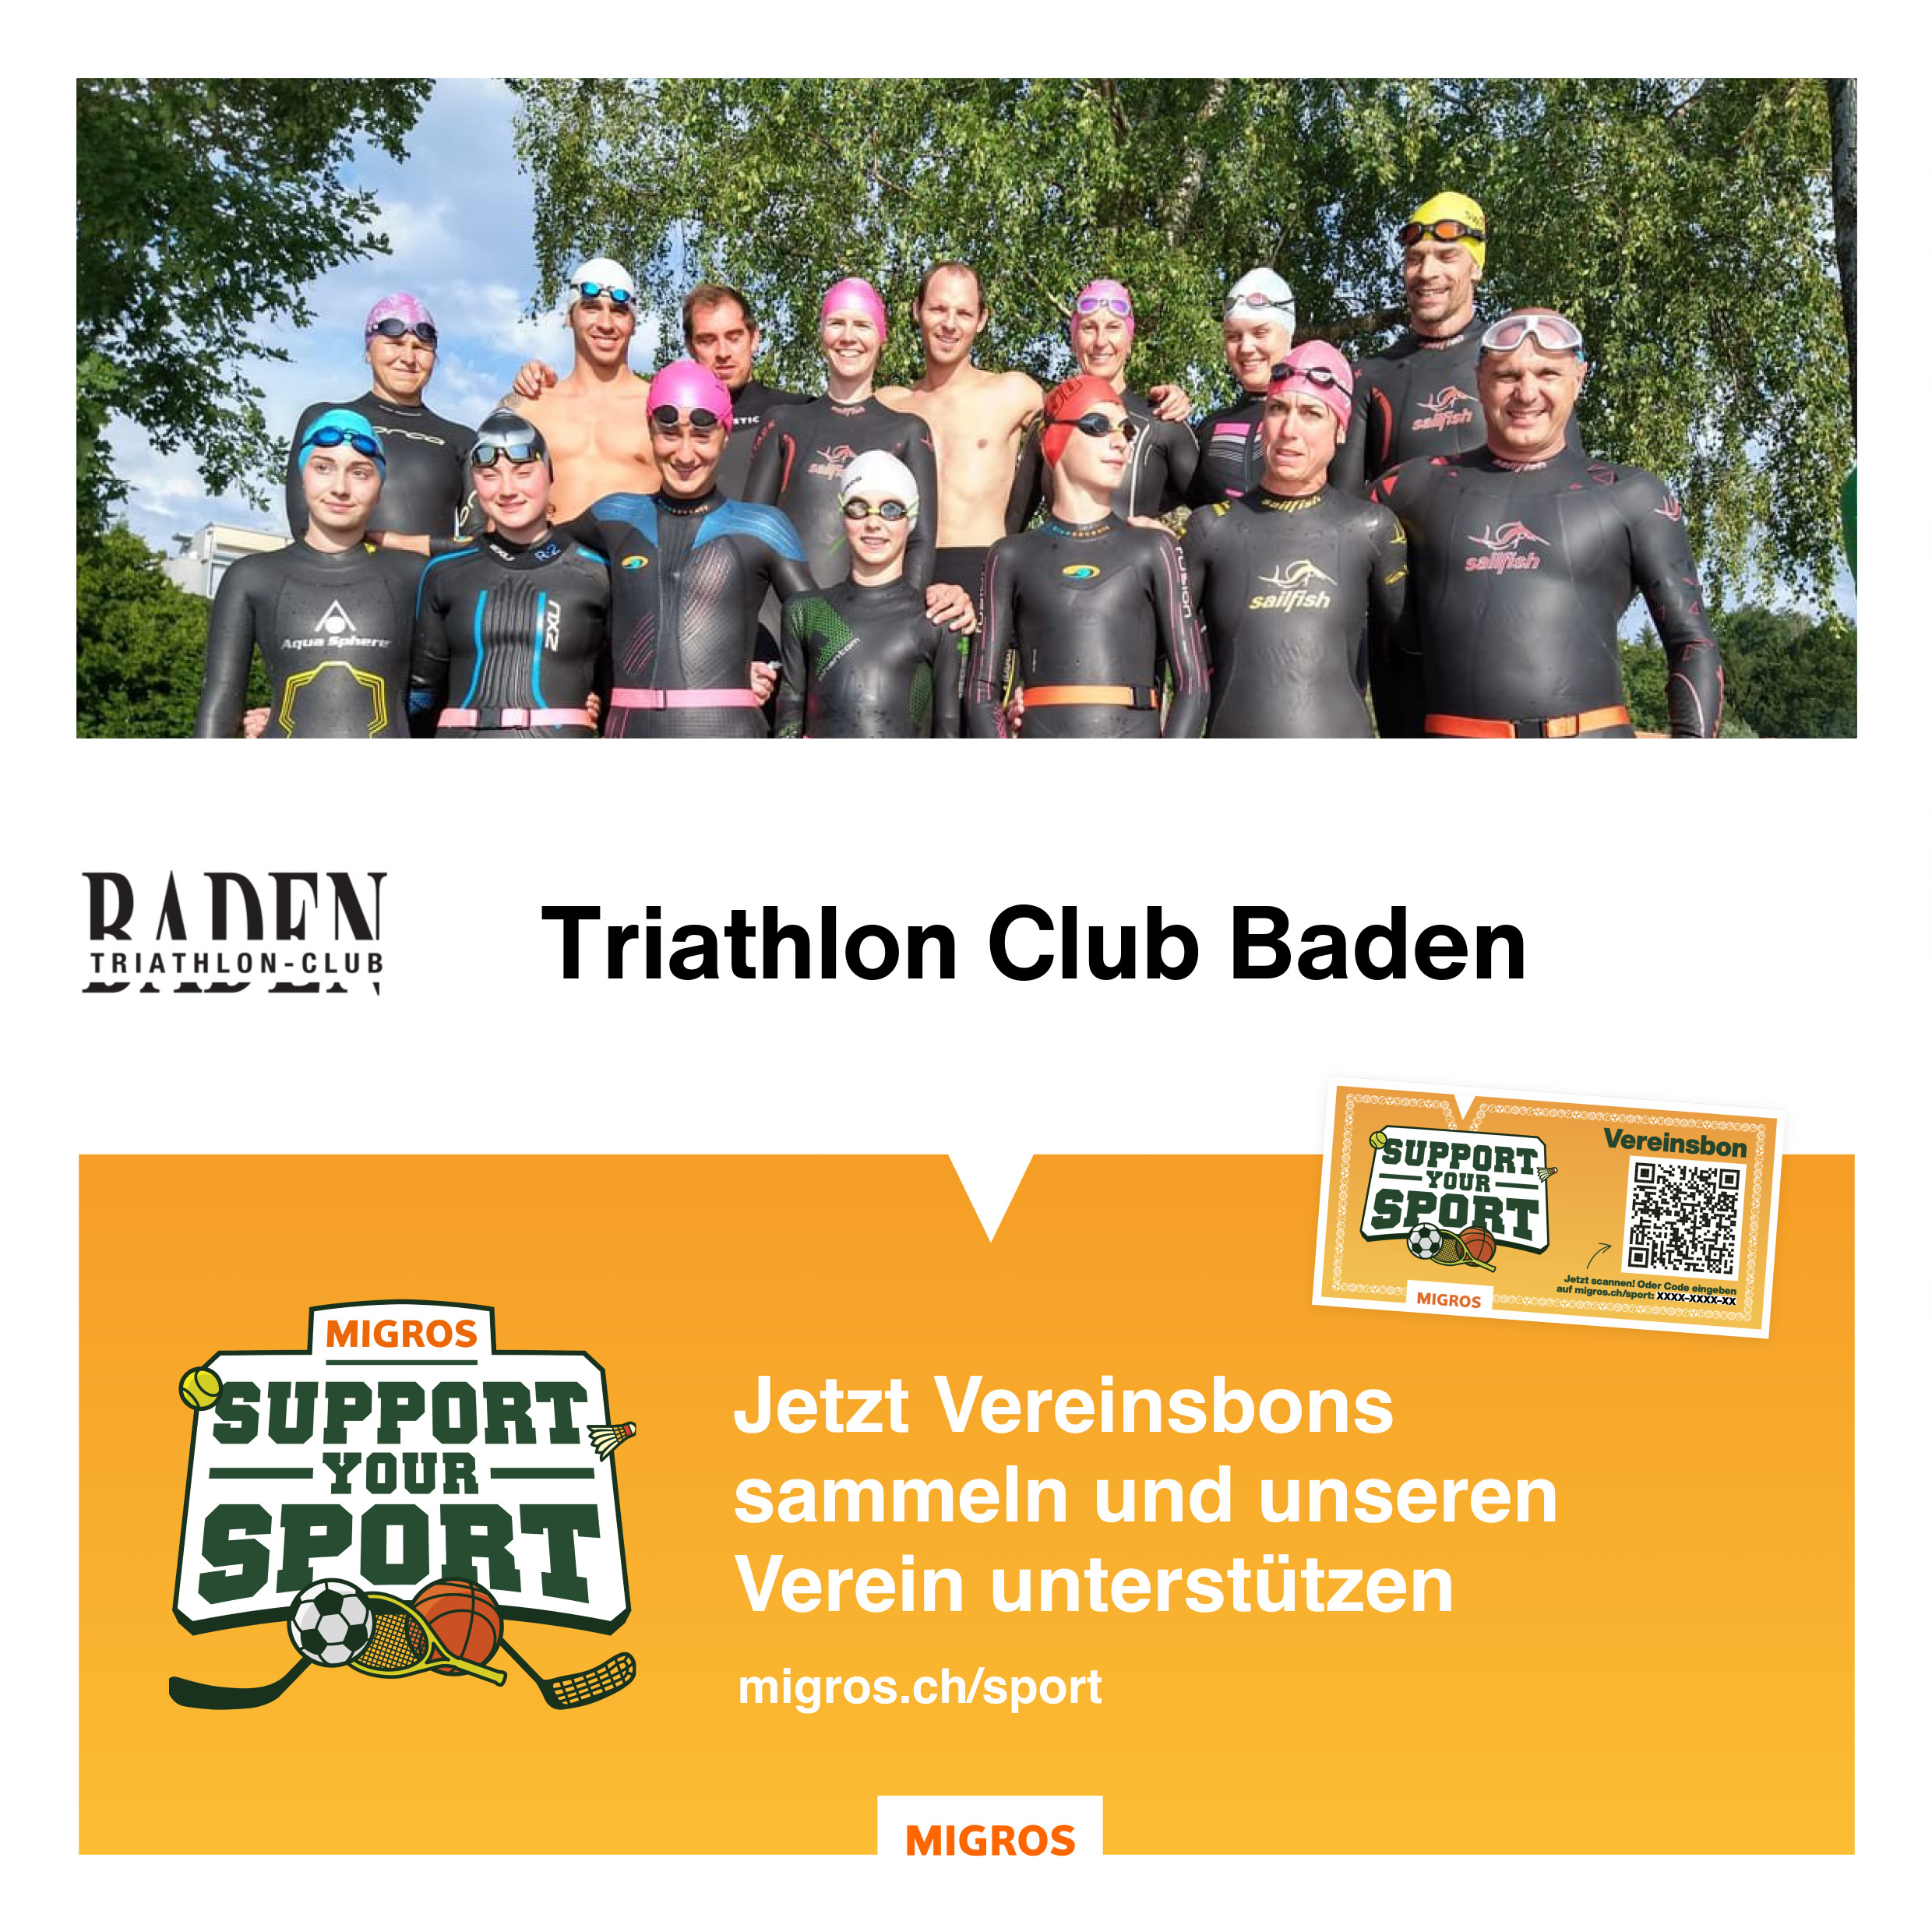 Migros Support your Sport Triathlon Club Baden